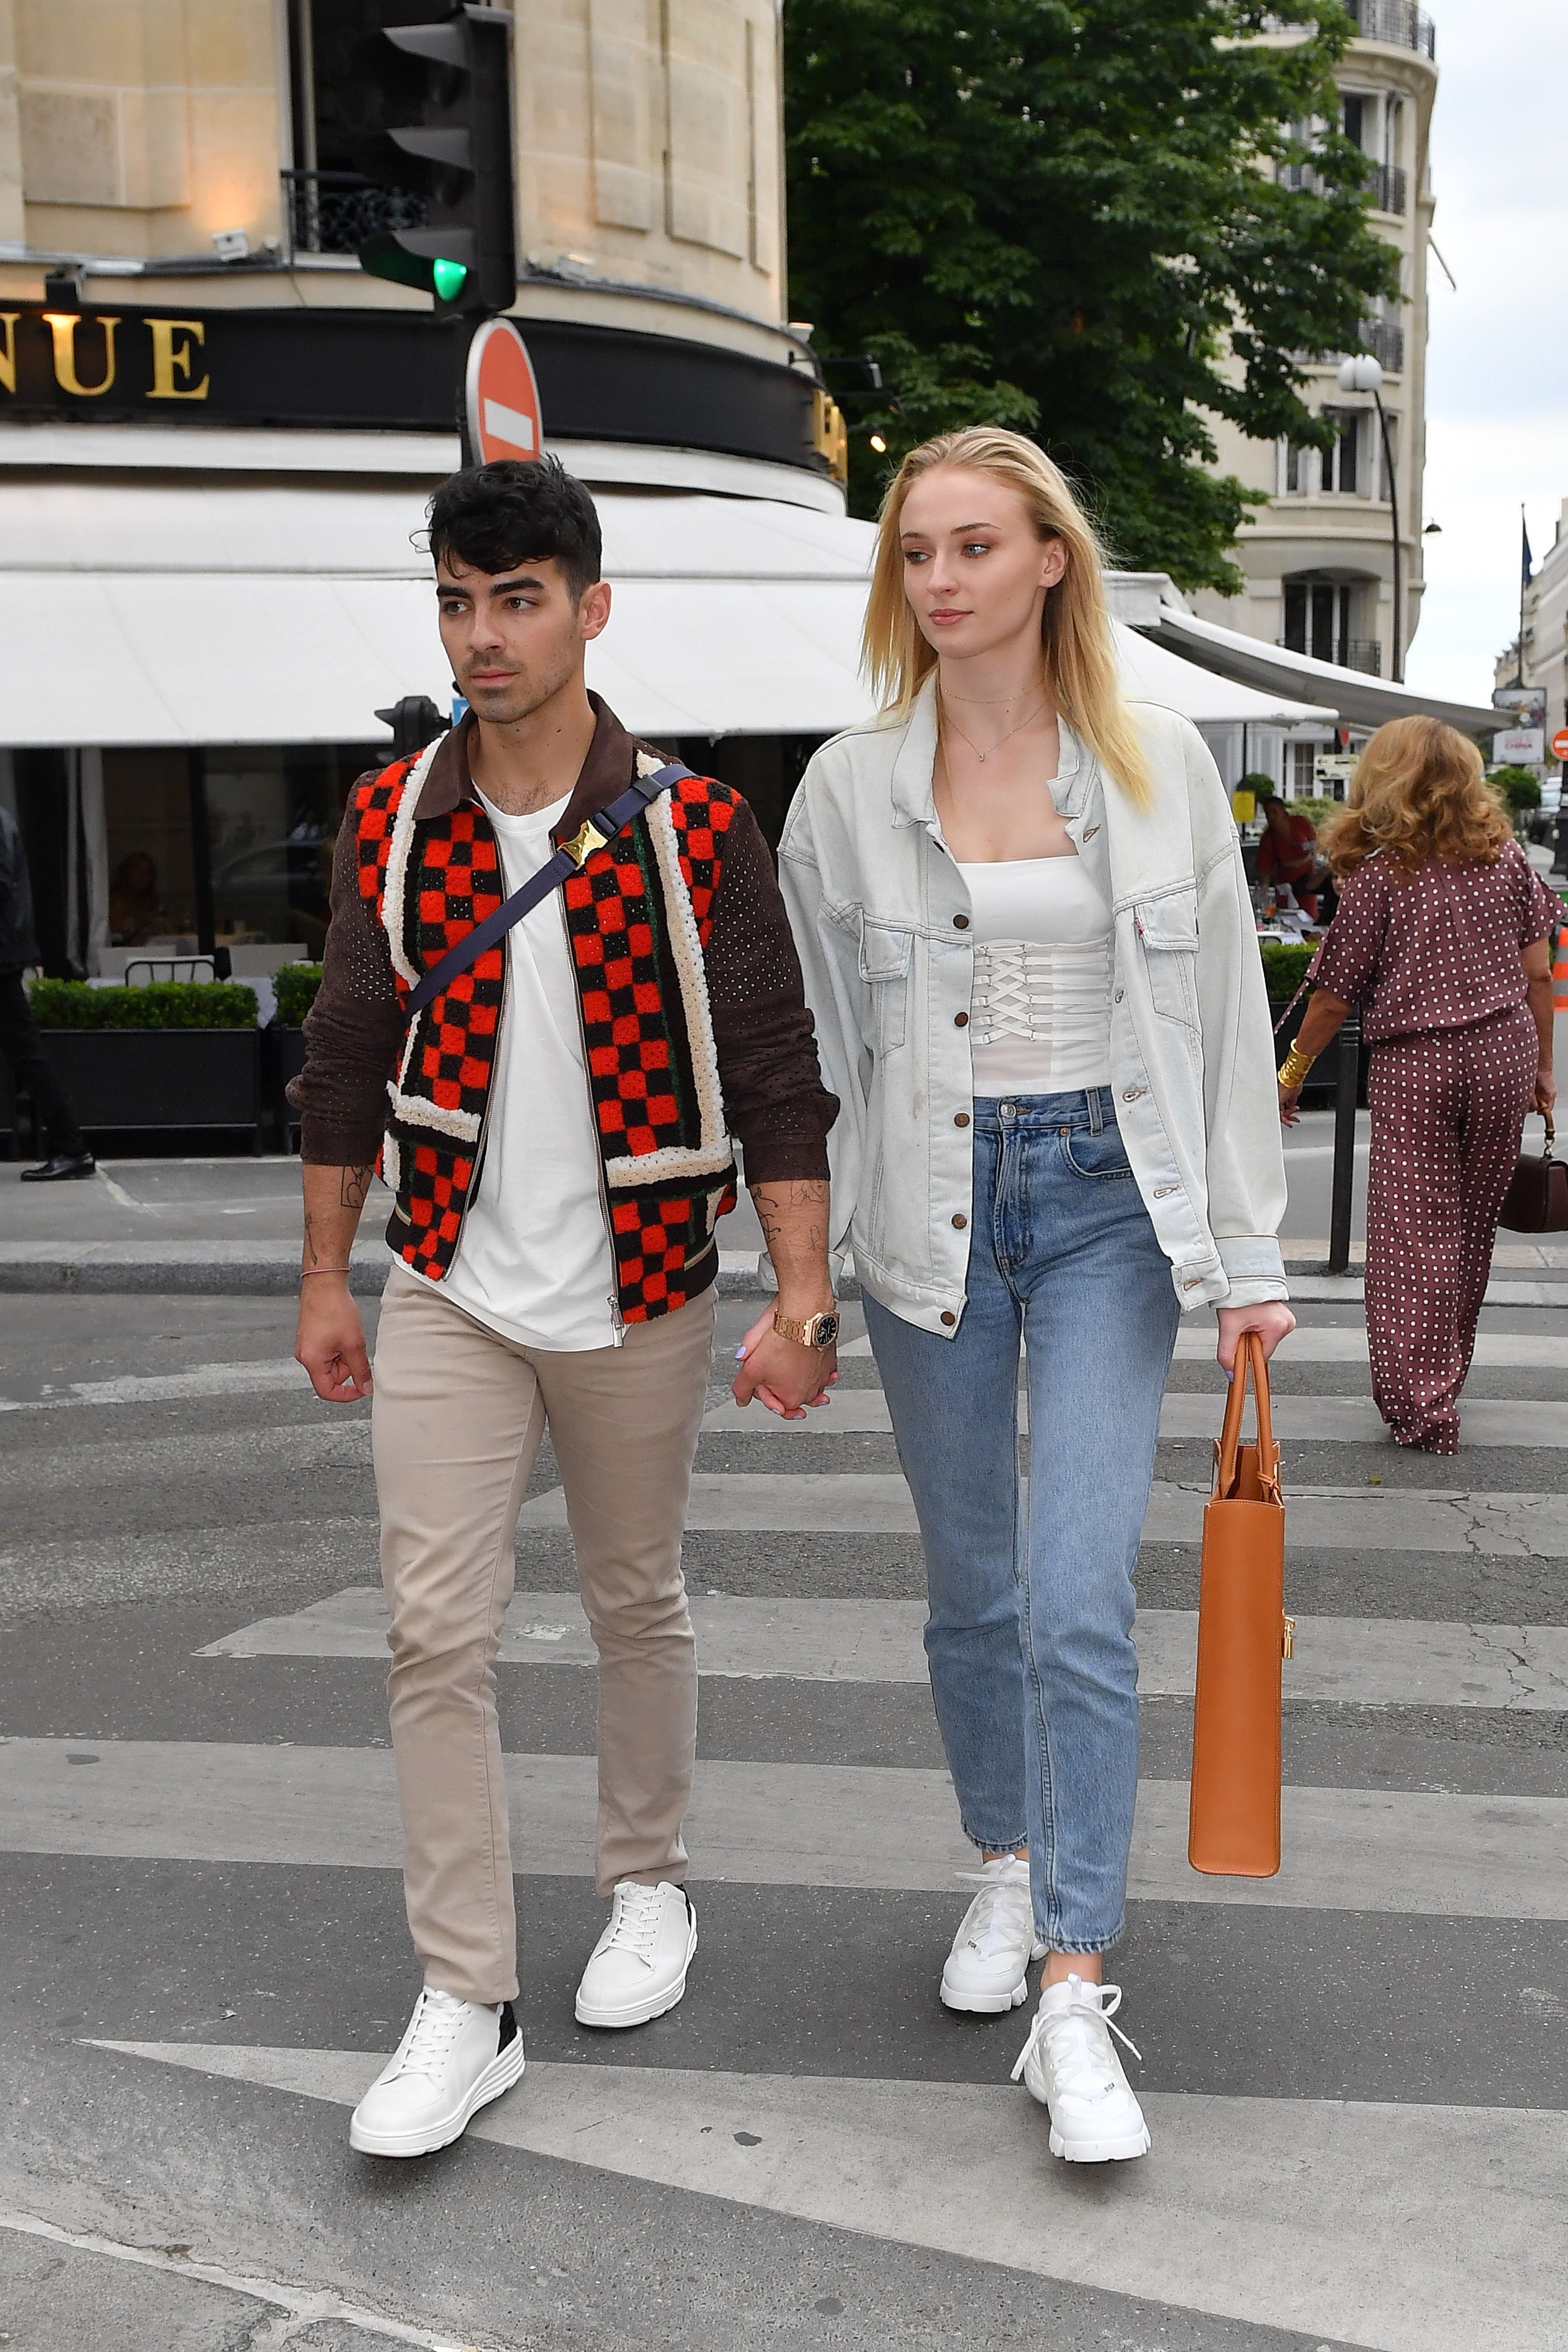 Joe Jonas and Sophie Turner Post Their French Kiss Ahead of Wedding